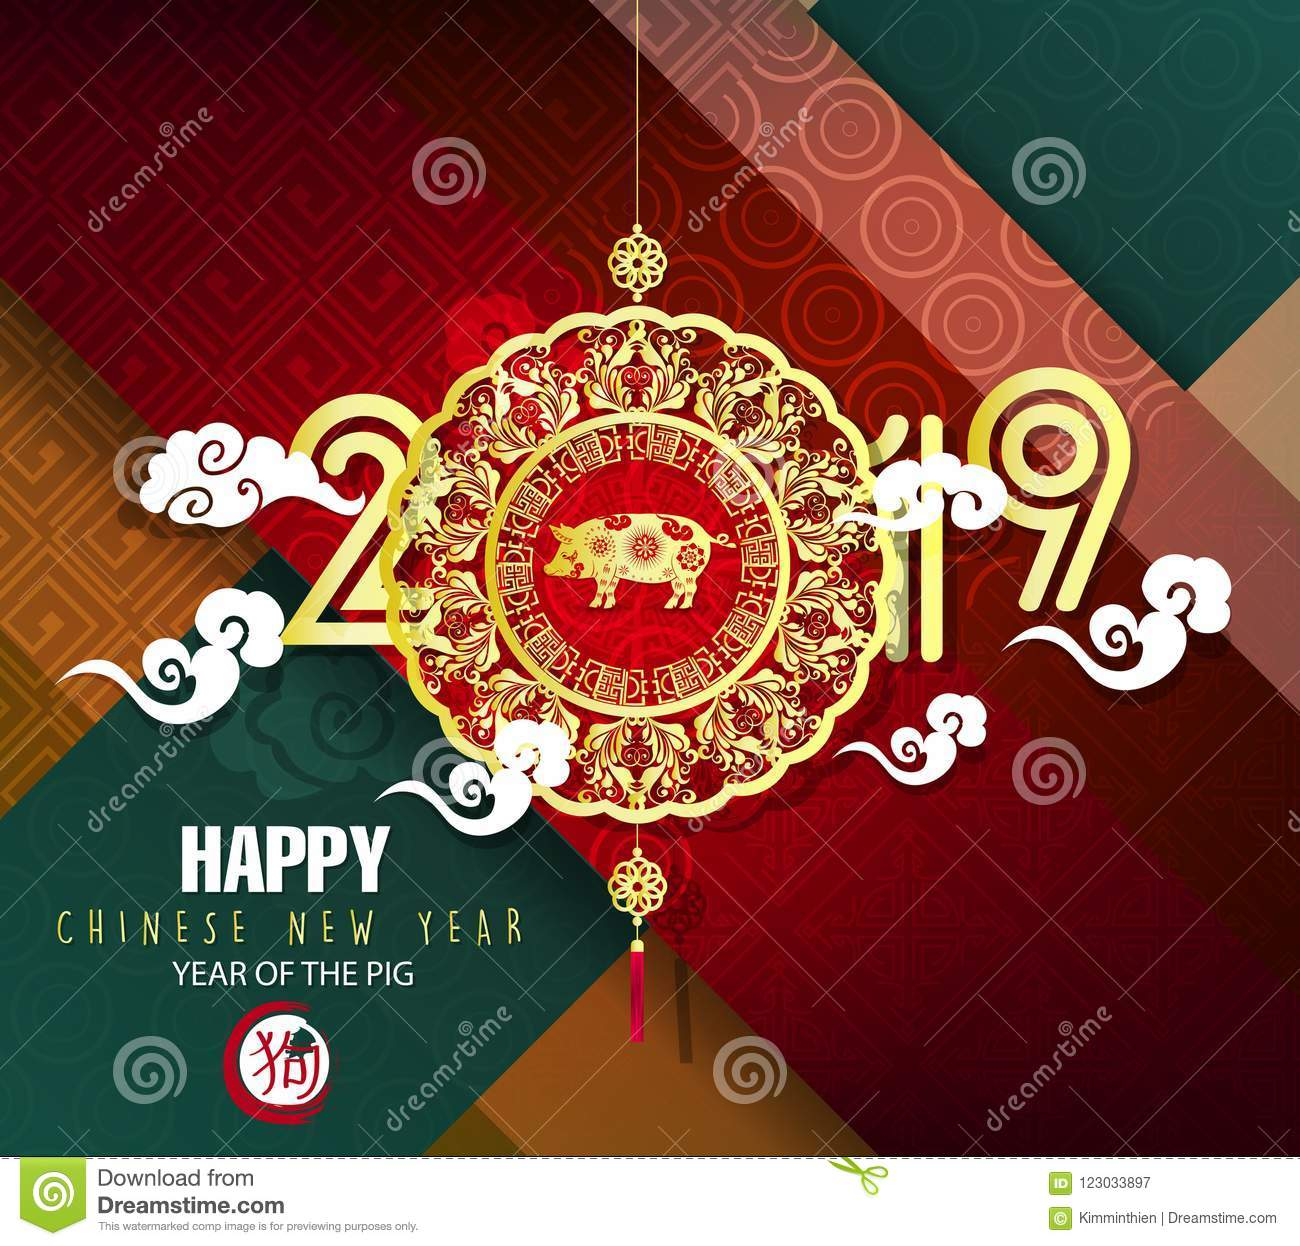 Happy New Year 2019 Greeting Card And Chinese New Year Of The Dog